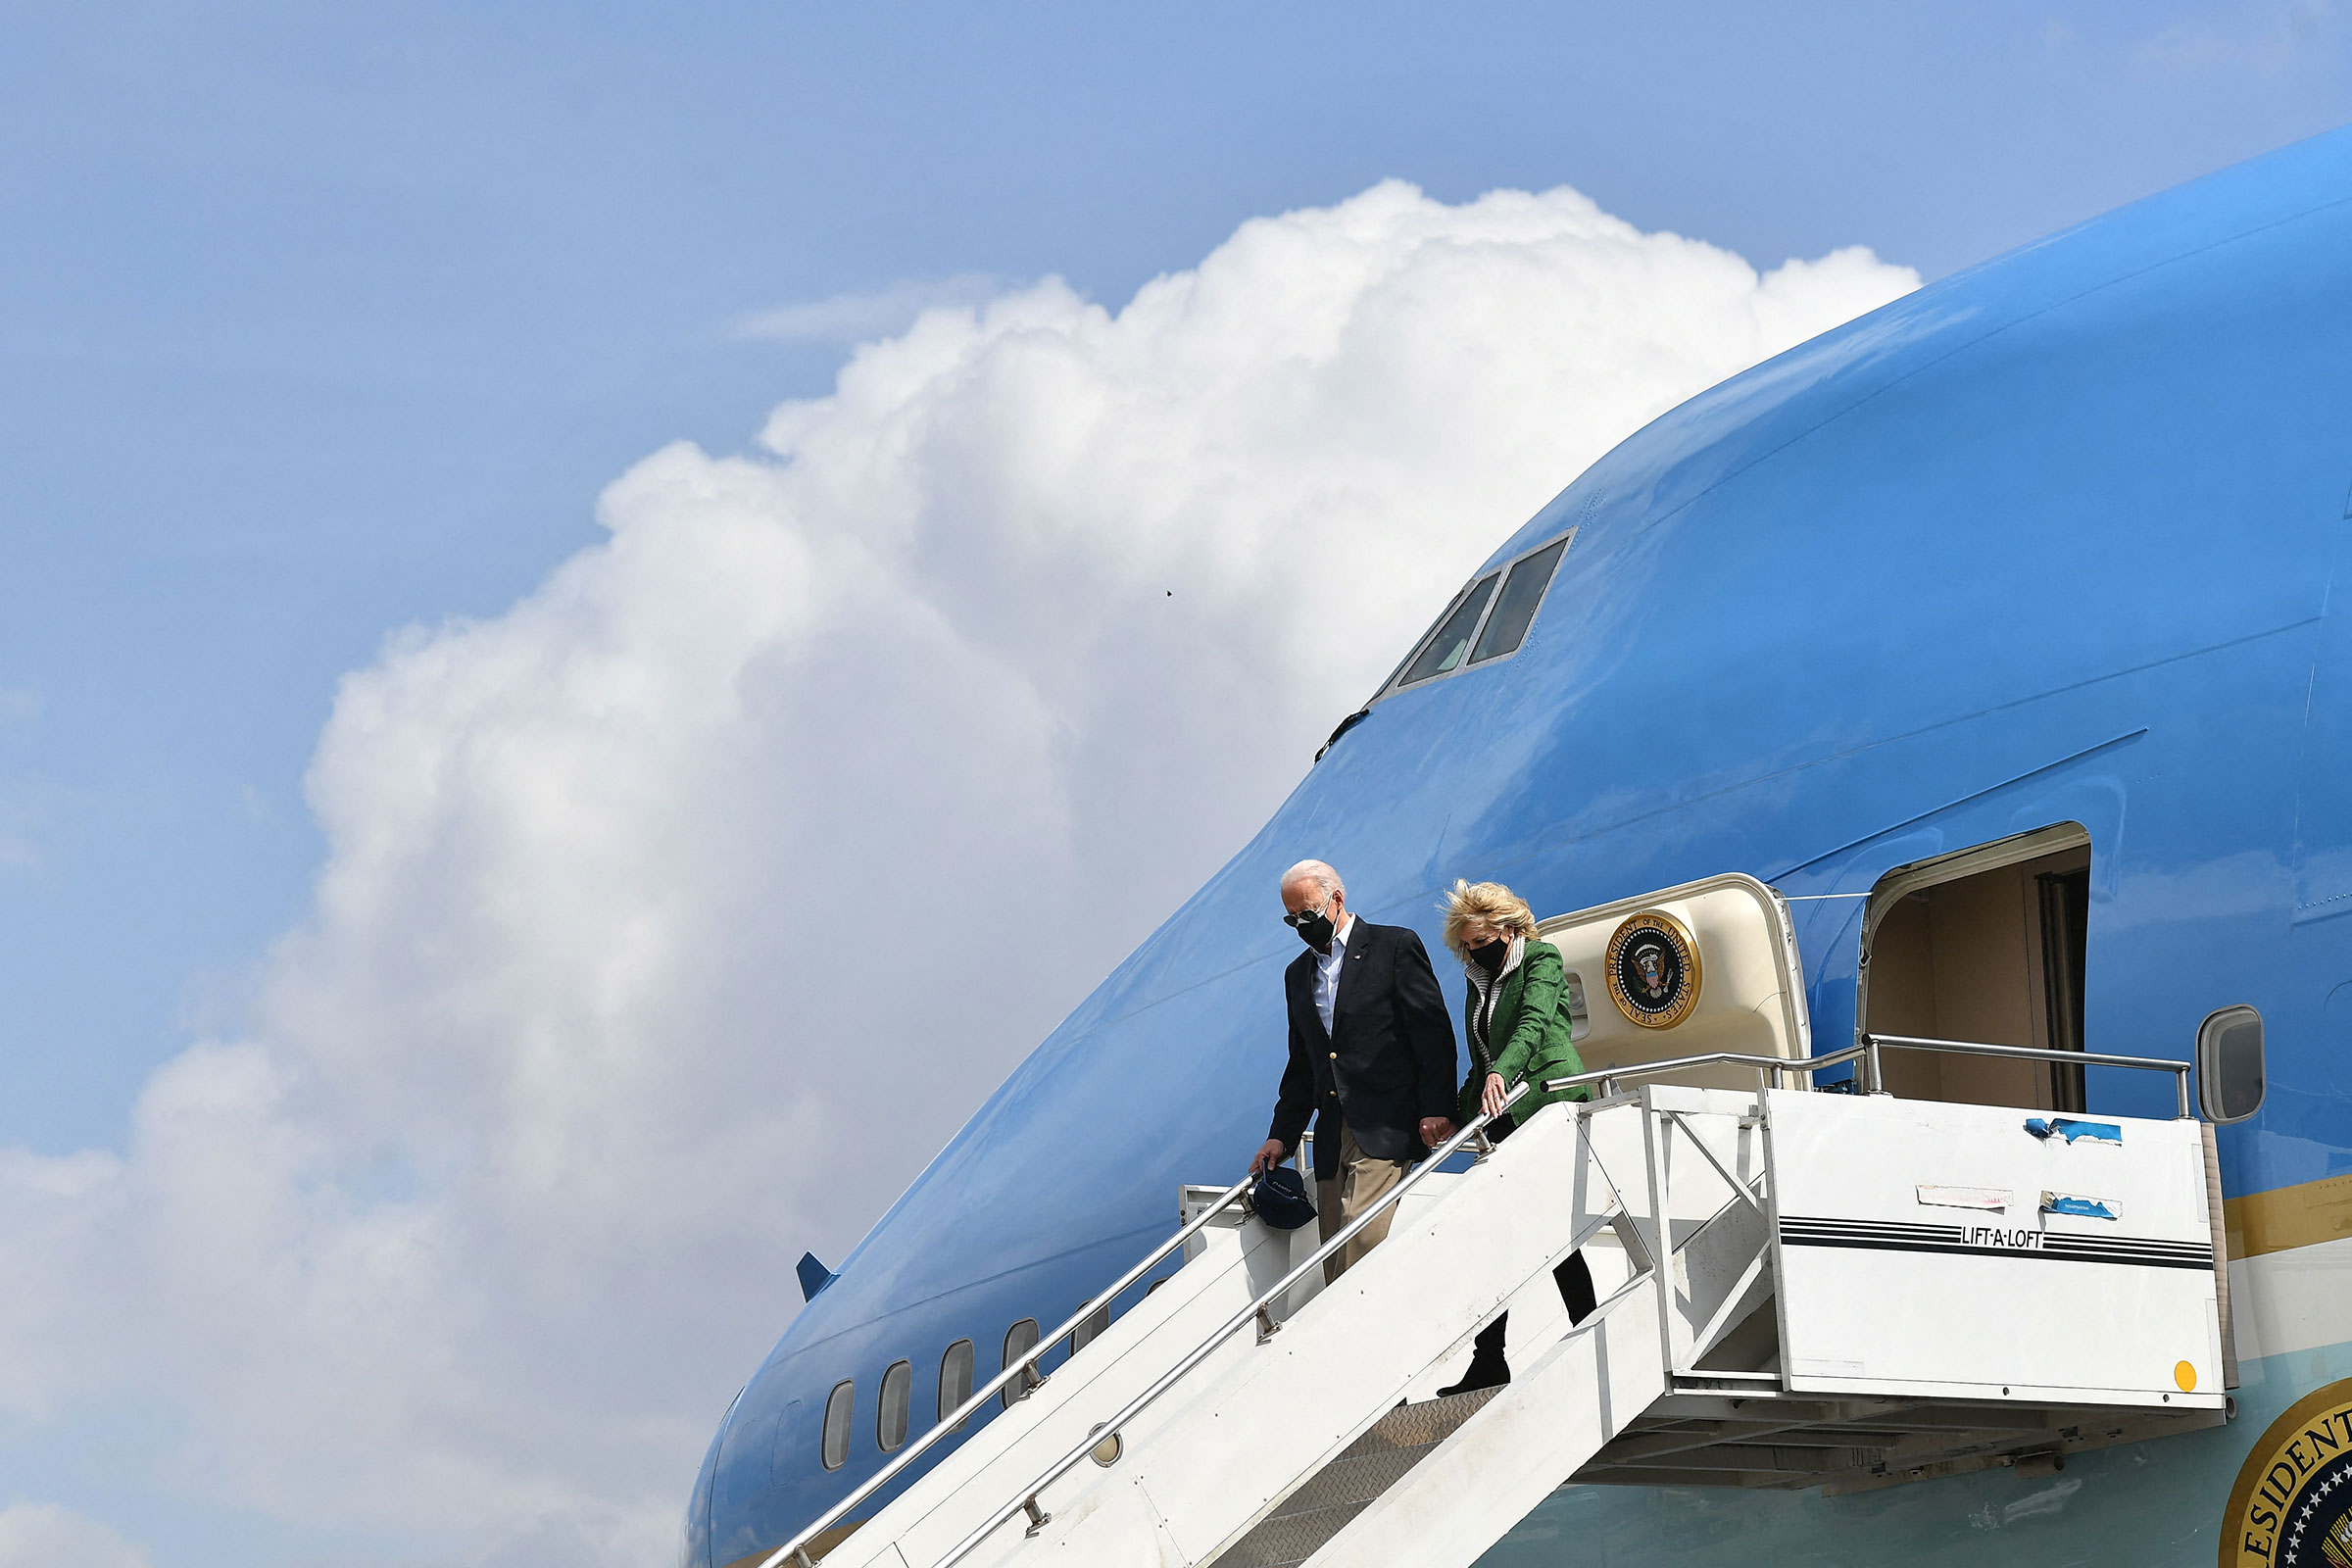 President Joe Biden and First Lady Jill Biden step off Air Force One upon arrival at Ellington Field Joint Reserve Base in Houston, Texas on Feb. 26, 2021.